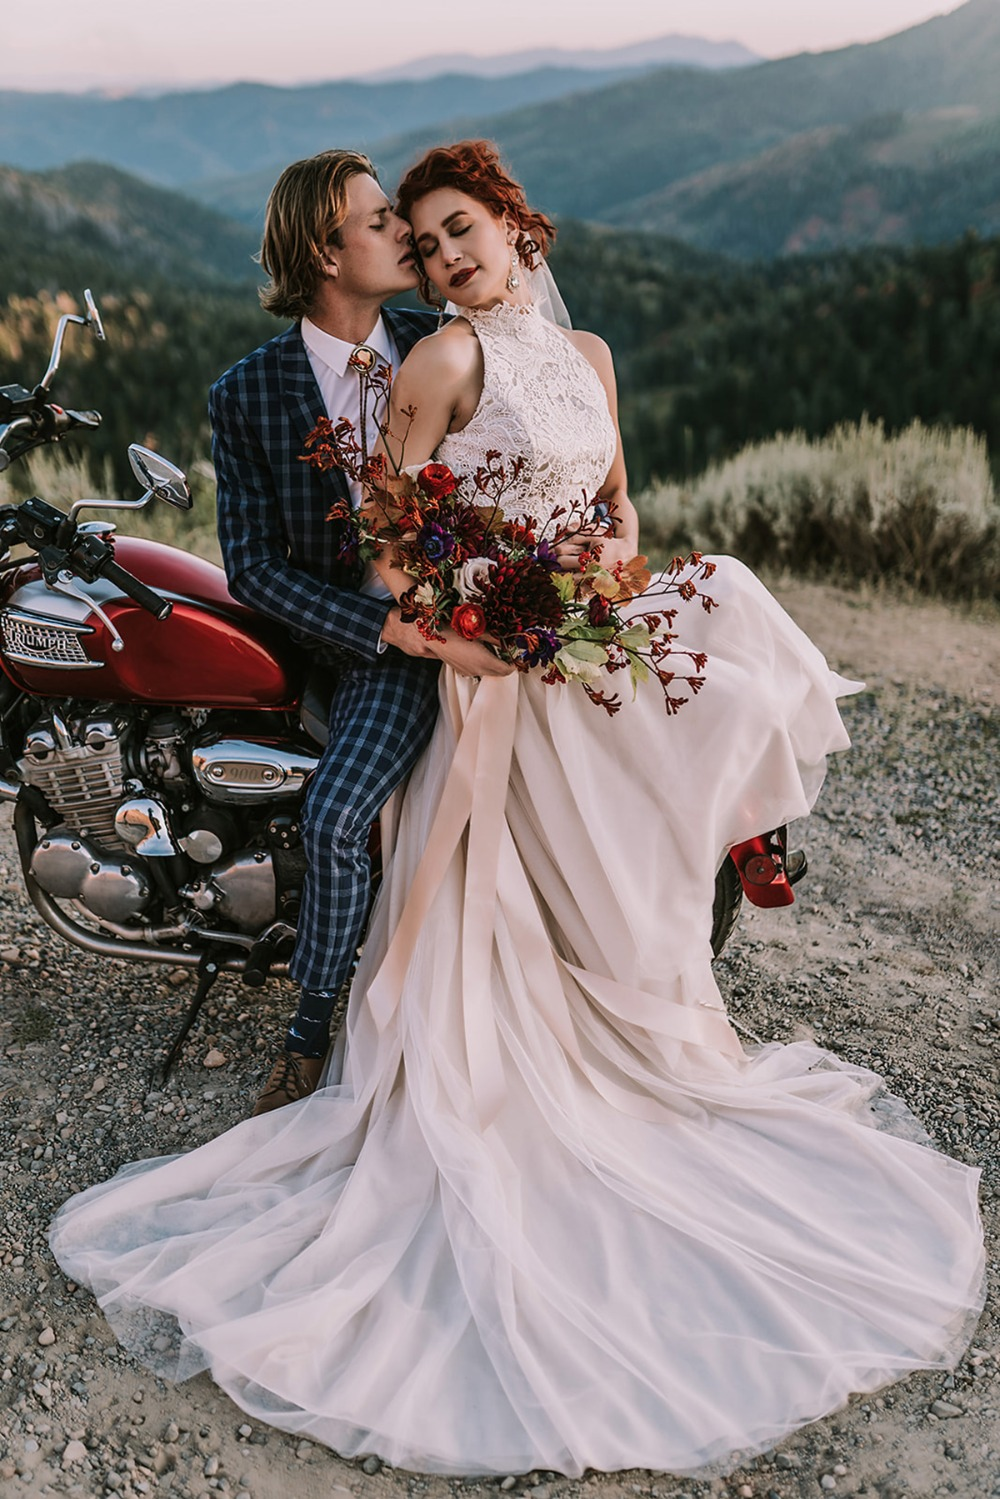 How To Style An After Wedding Shoot Around A Motorcycle